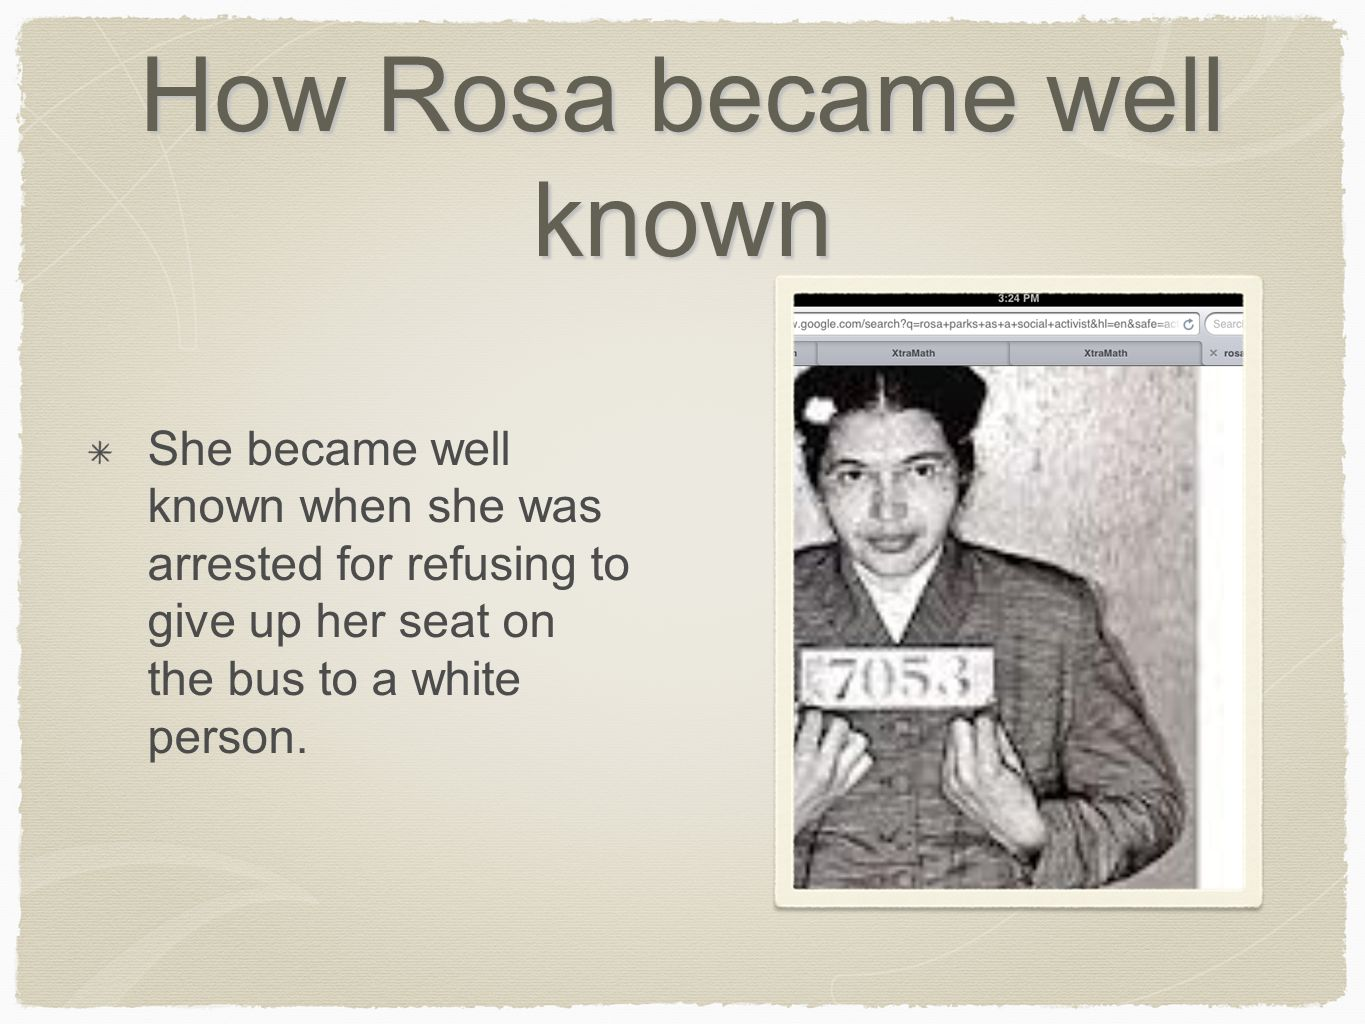 How Rosa became well known